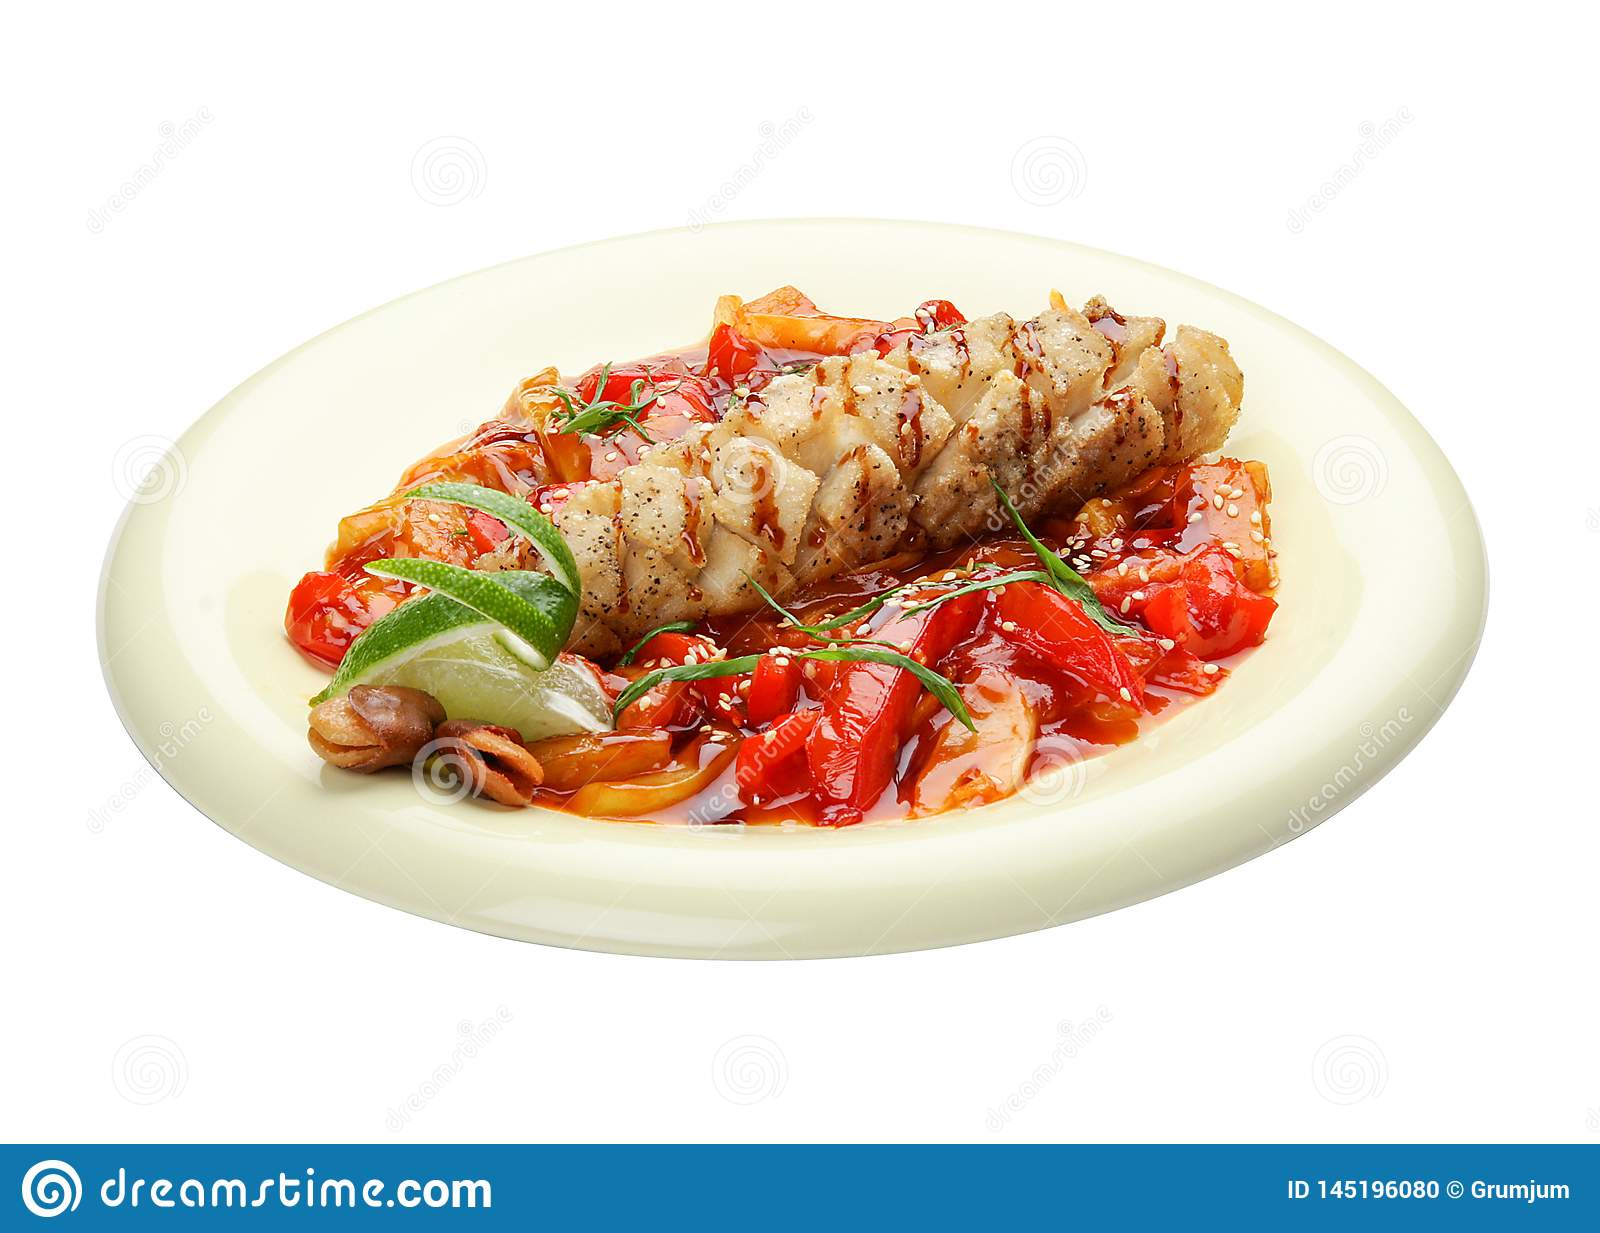 Pike perch with vegetables in sweet and sour sauce. Asian cuisine